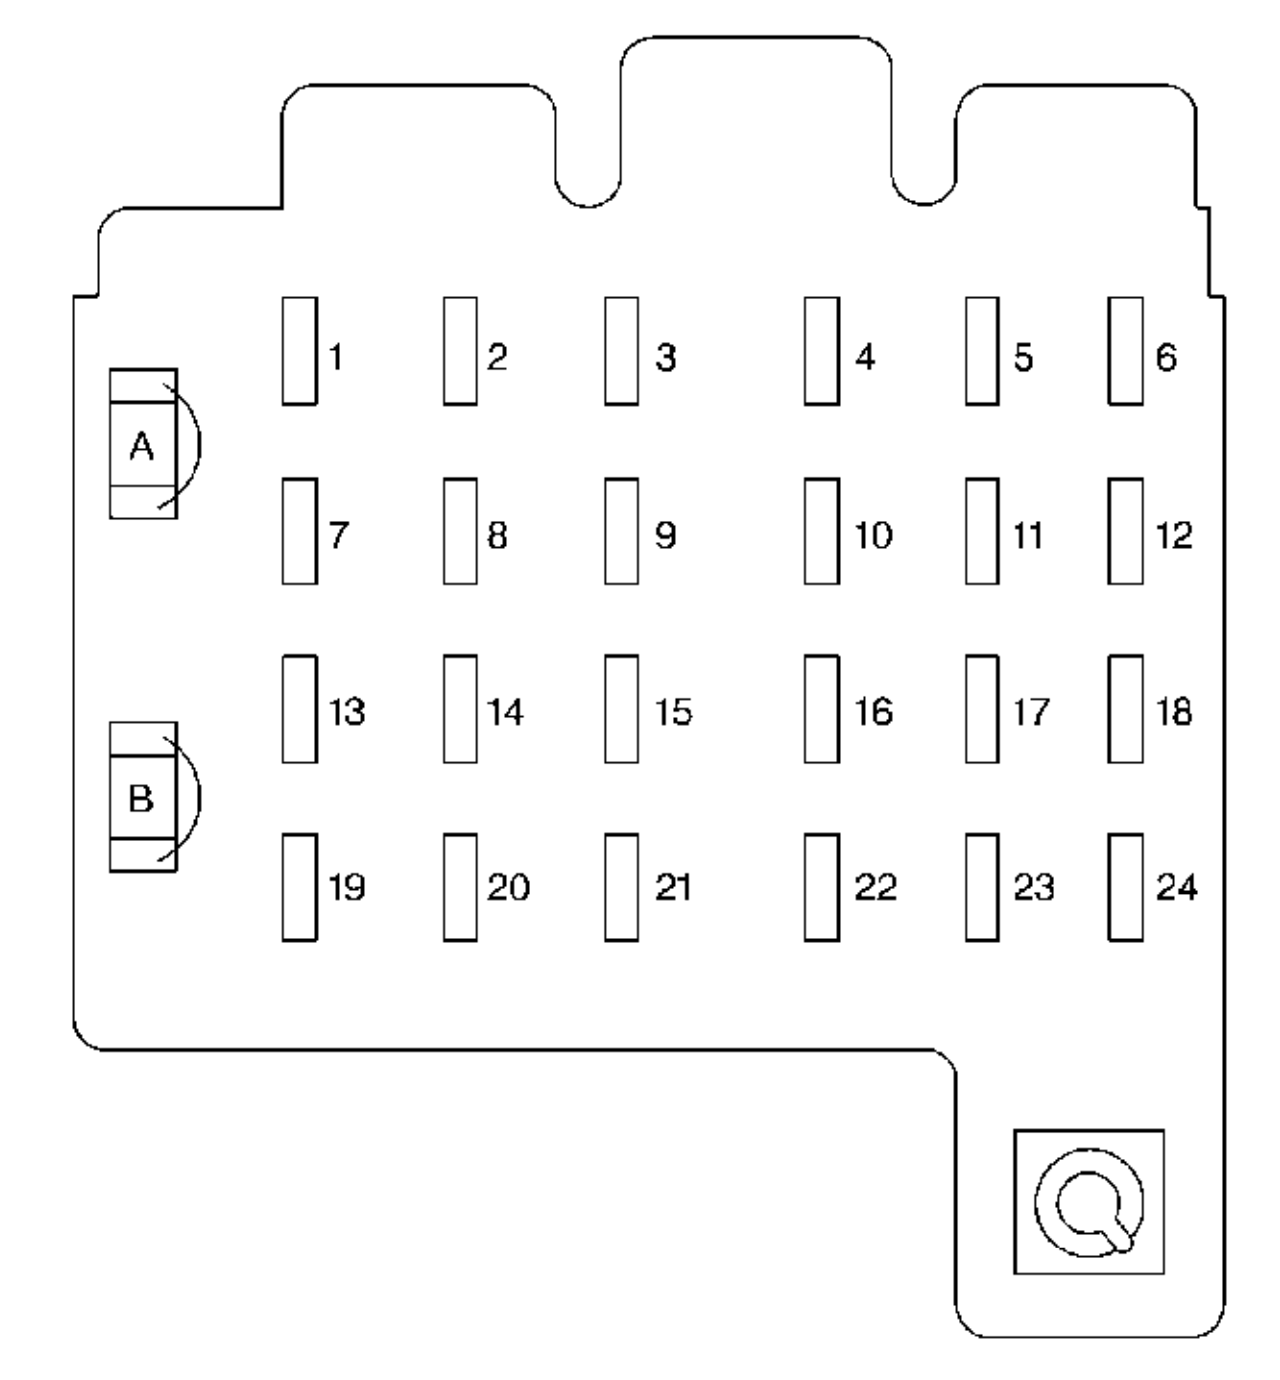 [DIAGRAM_09CH]  Chevrolet Suburban (1999) – fuse box diagram - Carknowledge.info | 1999 Oldsmobile Cutl Fuse Box Diagram |  | Carknowledge.info